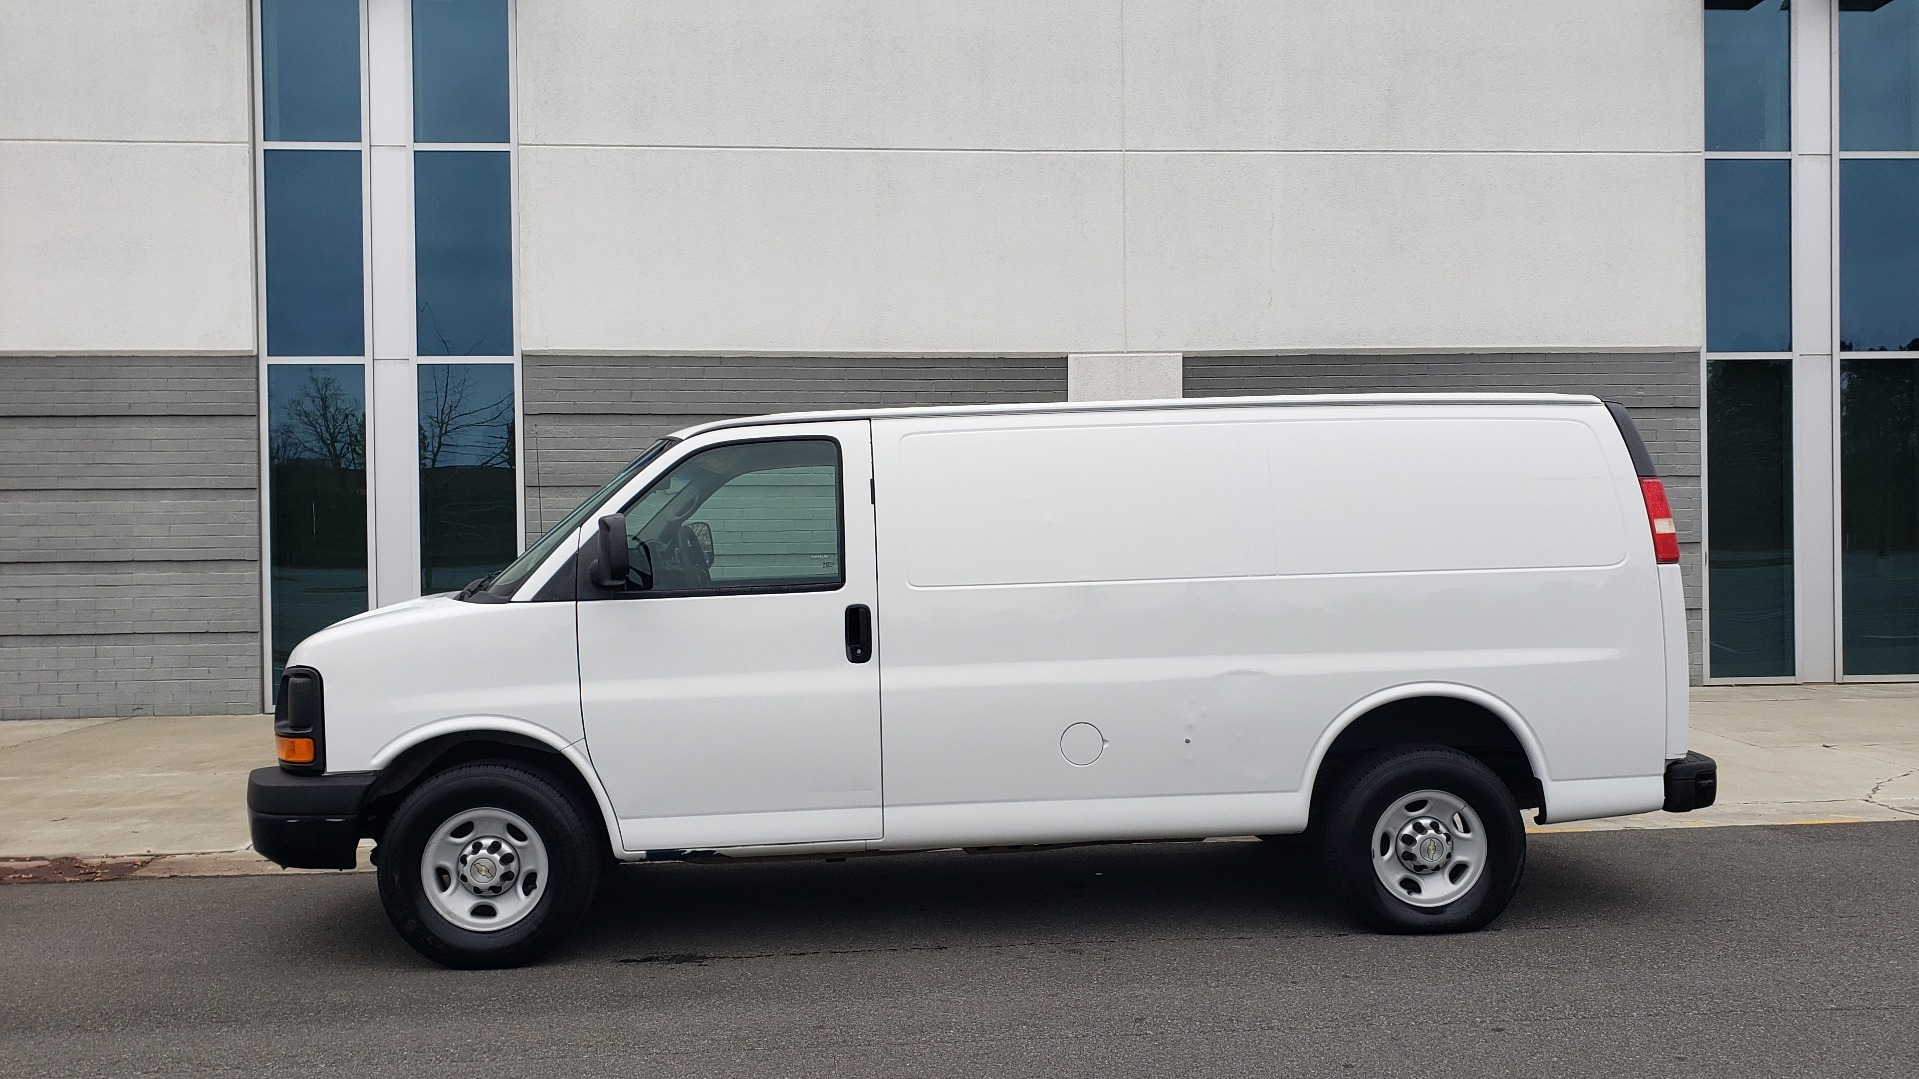 Used 2013 Chevrolet EXPRESS CARGO VAN 2500 / 135IN WB / STORAGE RACKS / RUNS GREAT for sale Sold at Formula Imports in Charlotte NC 28227 2